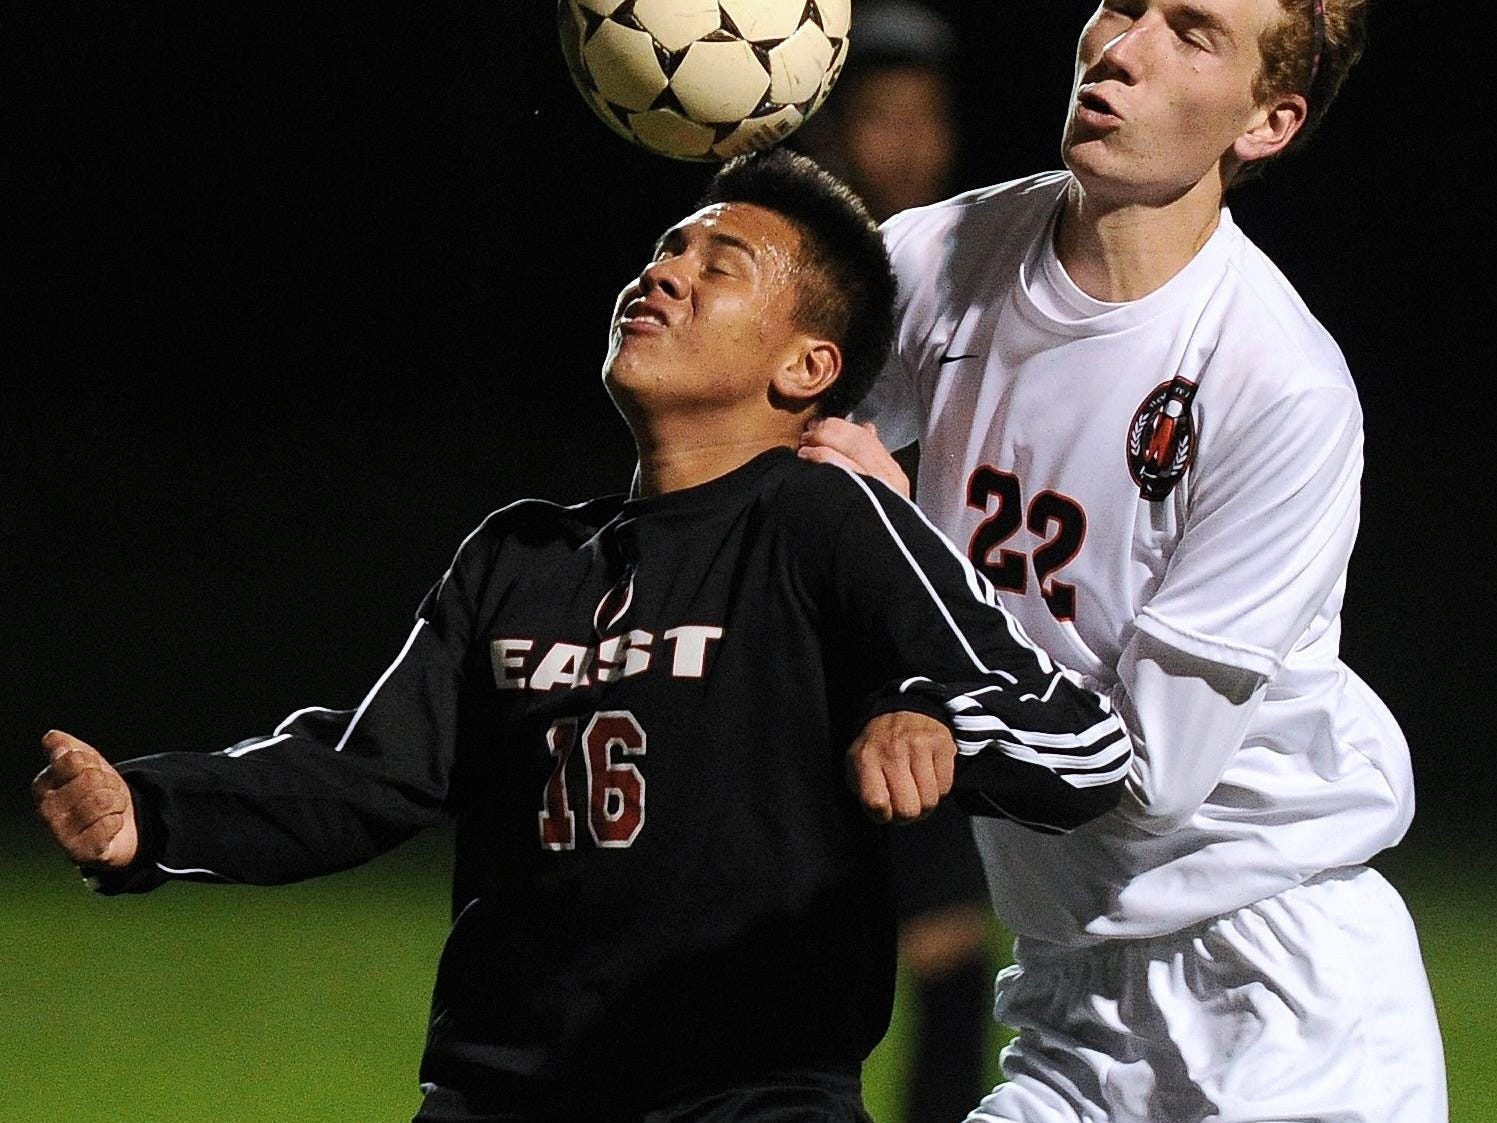 Green Bay East's Manuel Villagrana heads a ball while defended by West De Pere's Calvin Perry in the first half of Tuesday's FRCC soccer game.